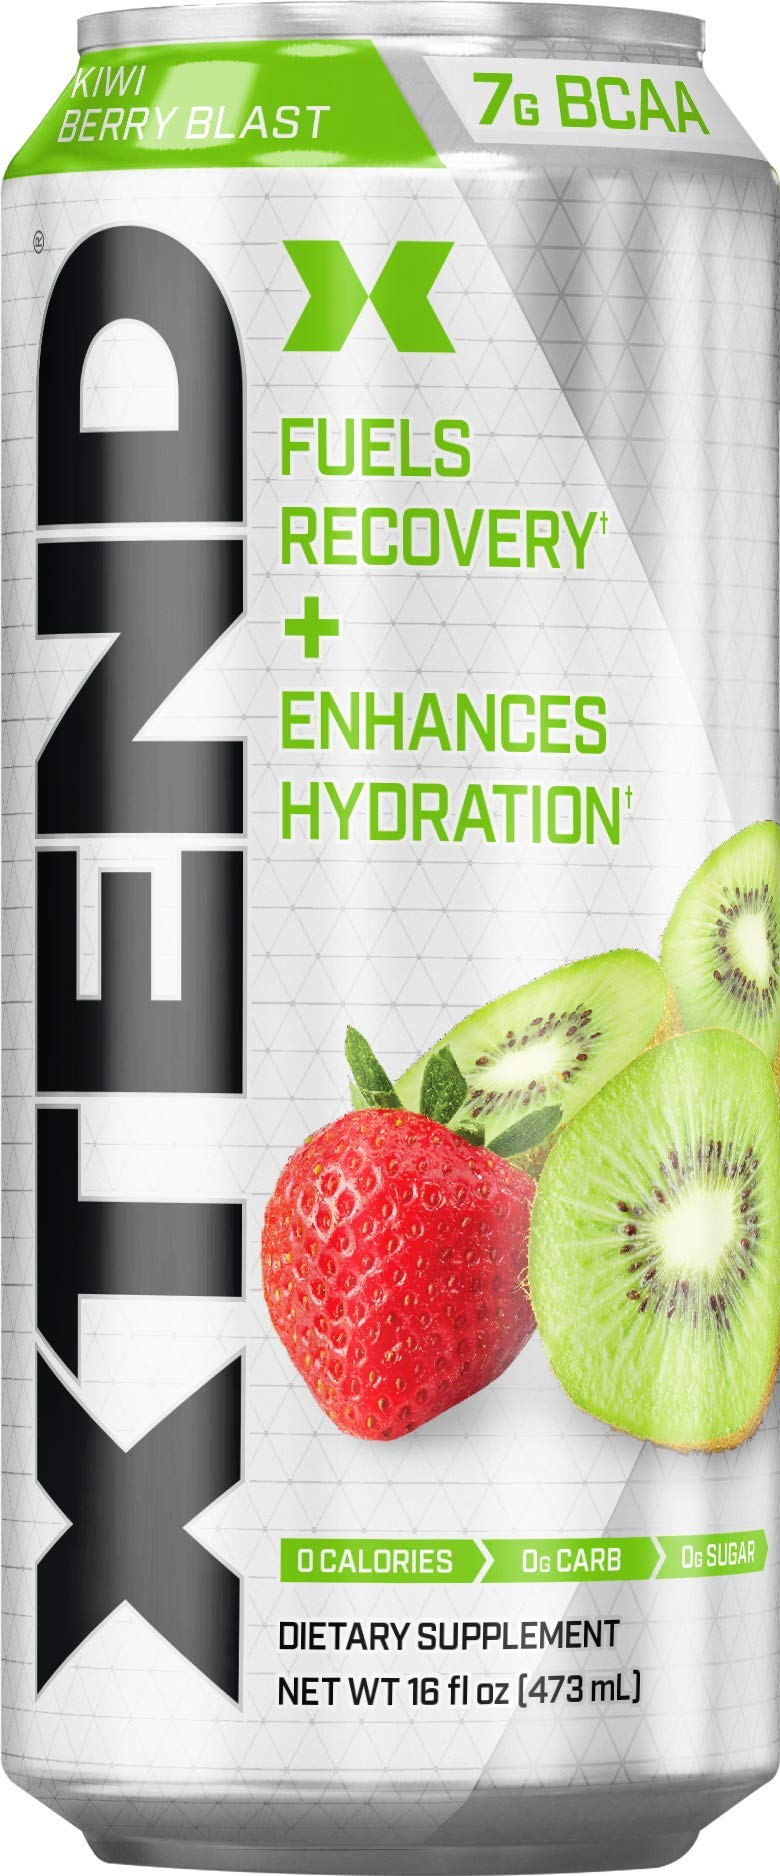 Scivation Xtend Carbonated Zero Sugar Hydration & Recovery Drink, Branched Chain Amino Acids, Electrolytes + Performance BCAAs, Kiwi Berry Blast, 16 Ounce Cans (Pack of 4)